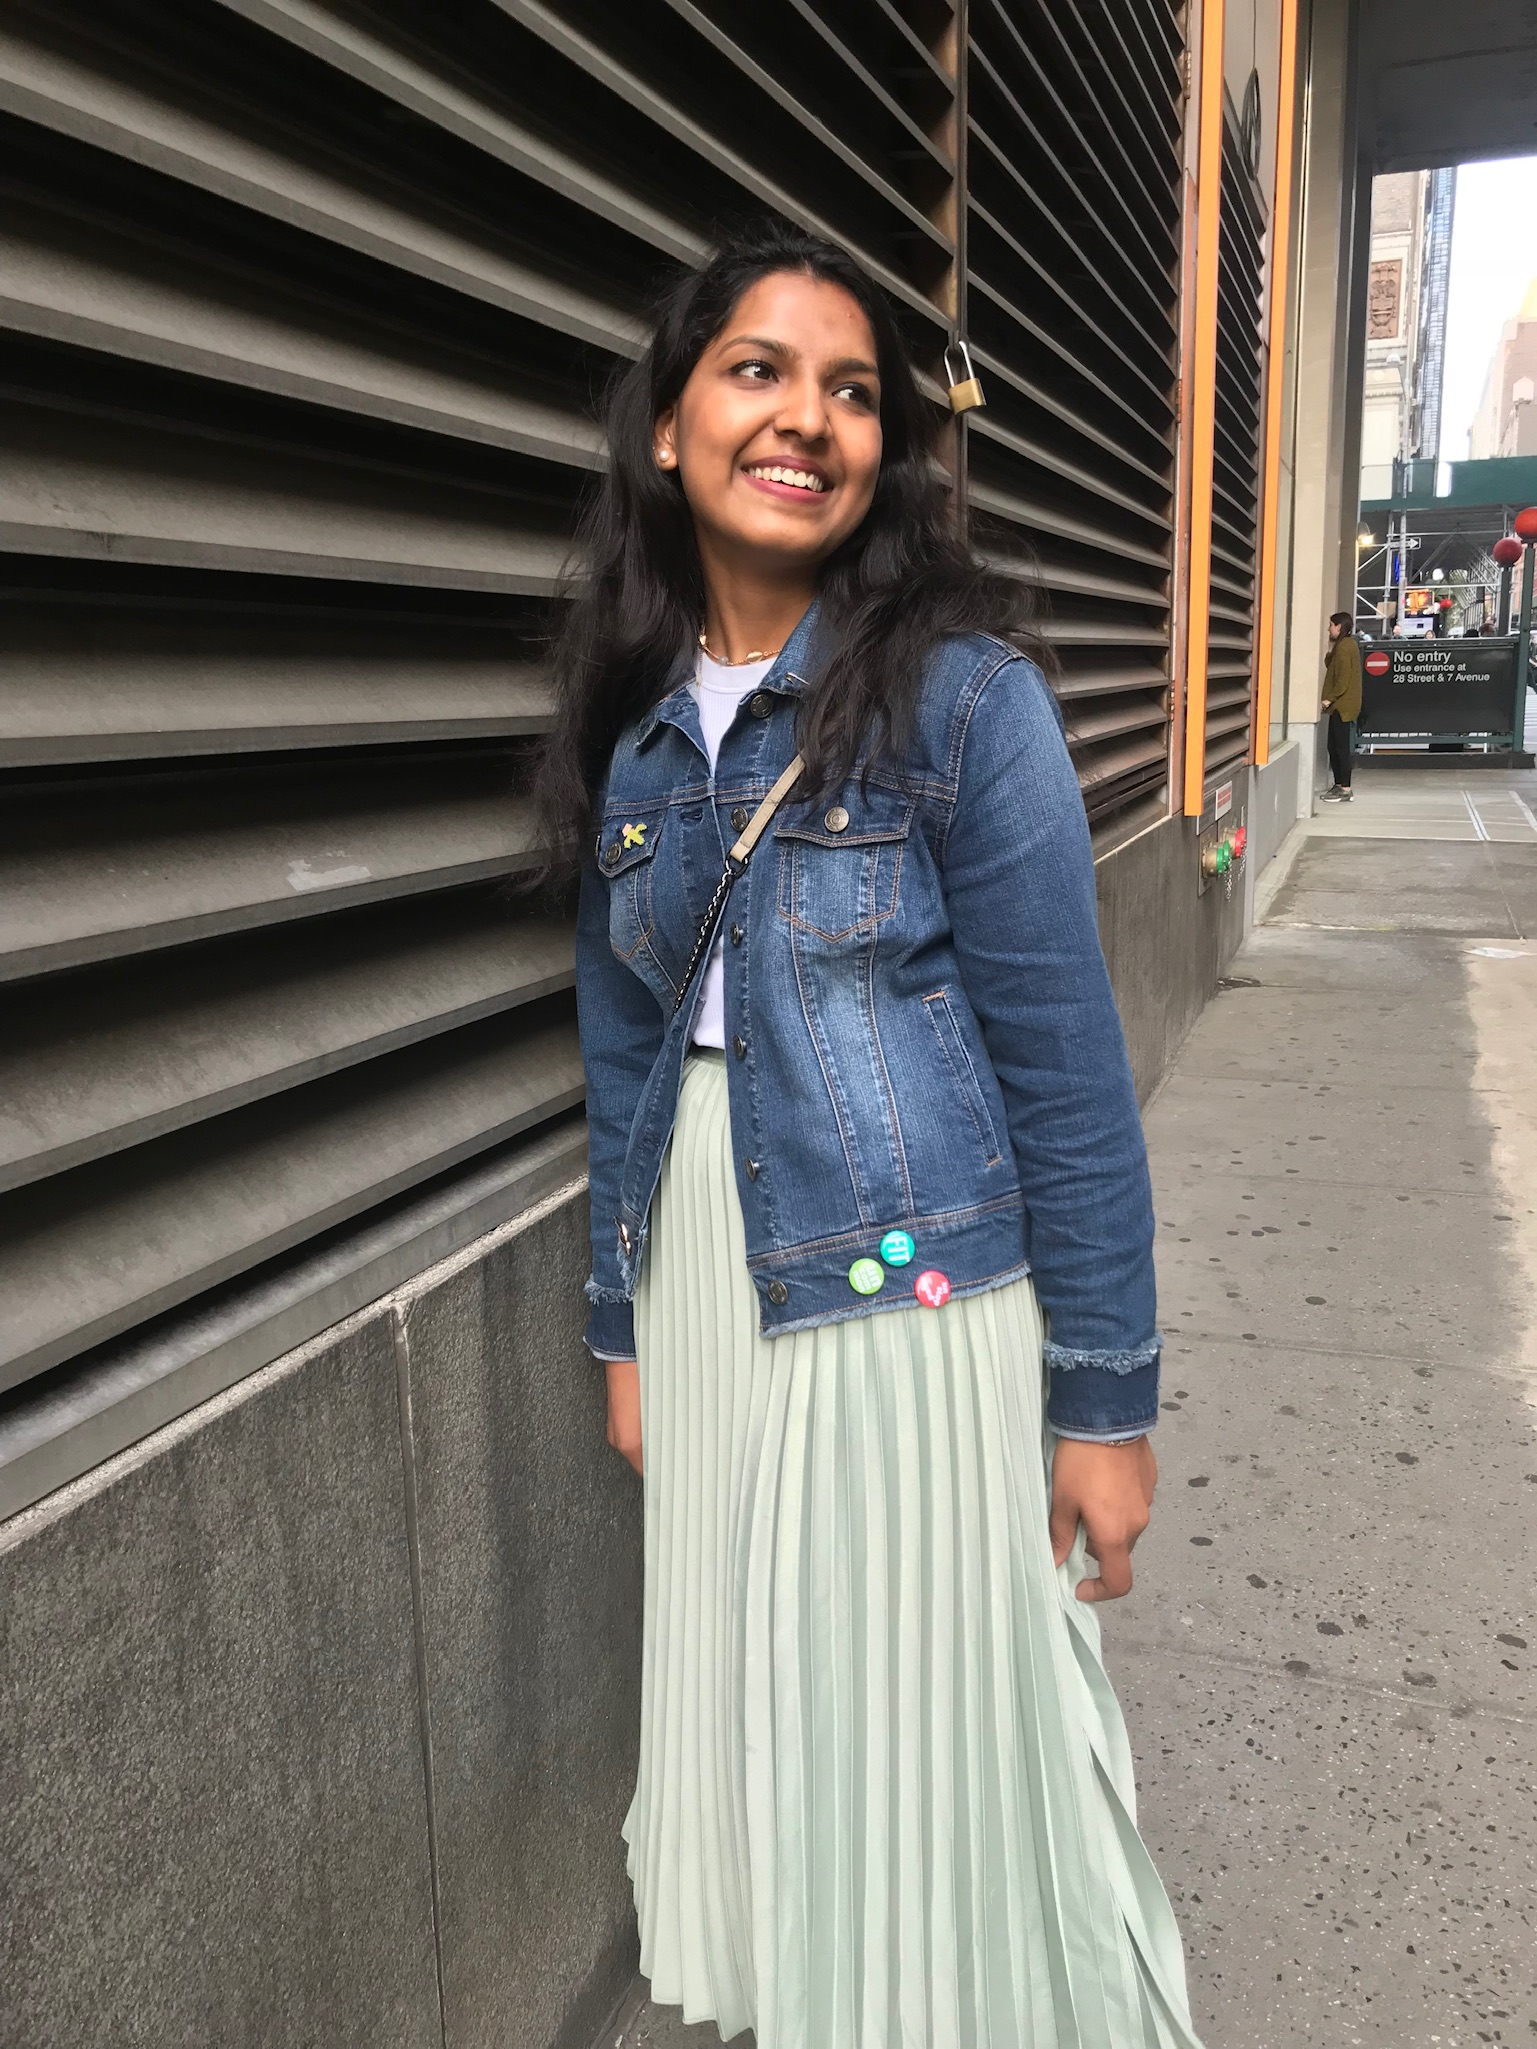 Kanika Tibrewal  is a Jewelry and Accessories Design from Fashion Institute of Technology, New York. She works with a wide variety of styles and inspirations through her projects. Her expertise is in design,product development and monitoring new trends.